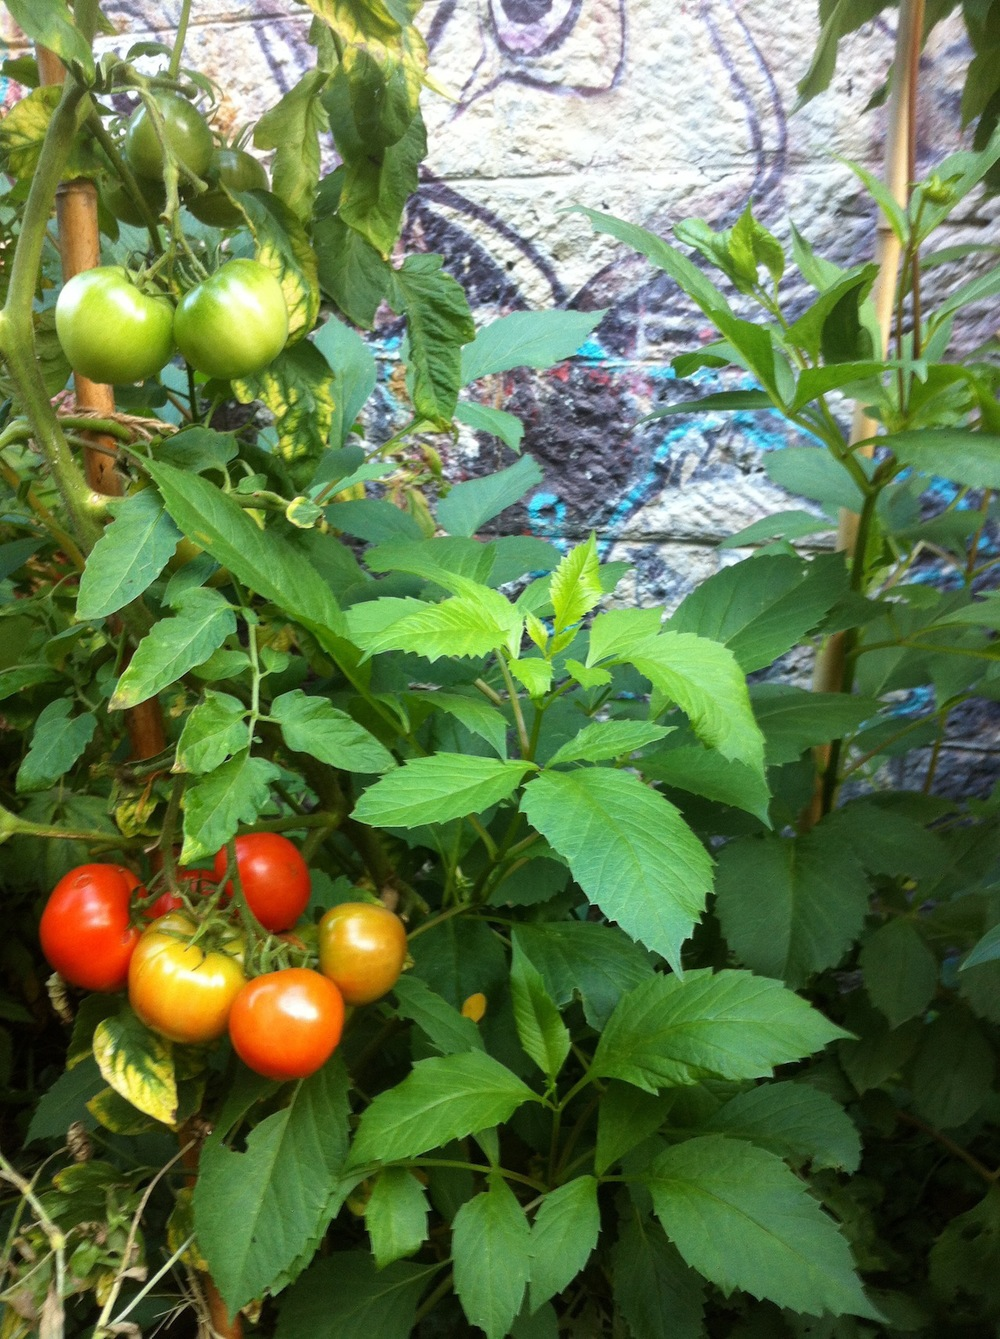 Tomatoes growing in a Paris community garden